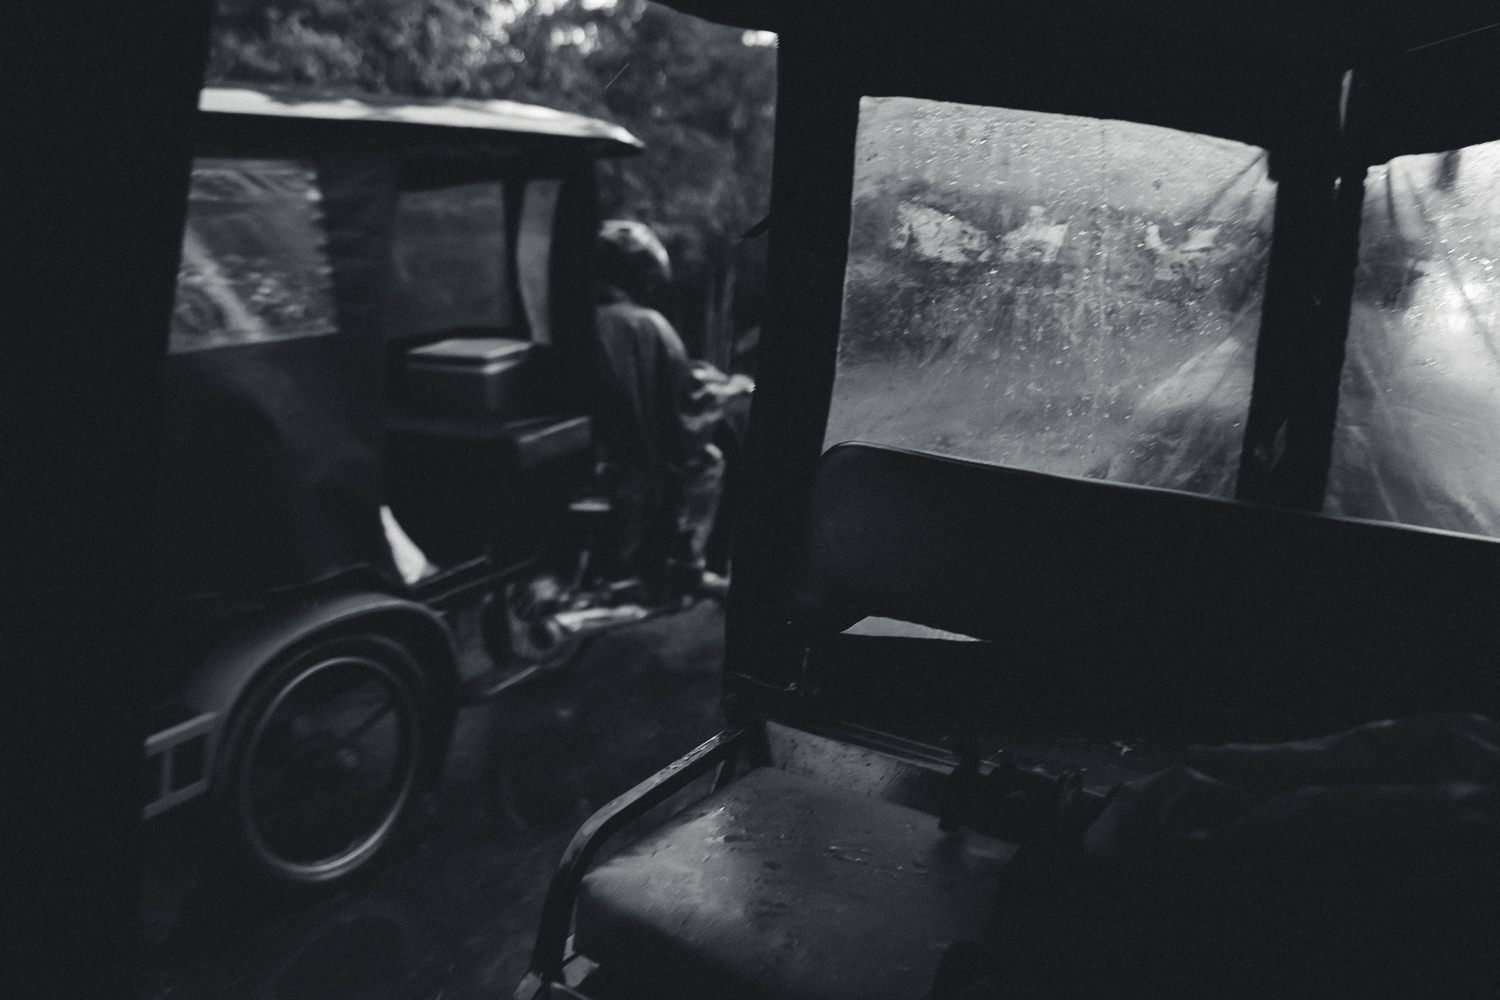 Rain and tuk-tuks